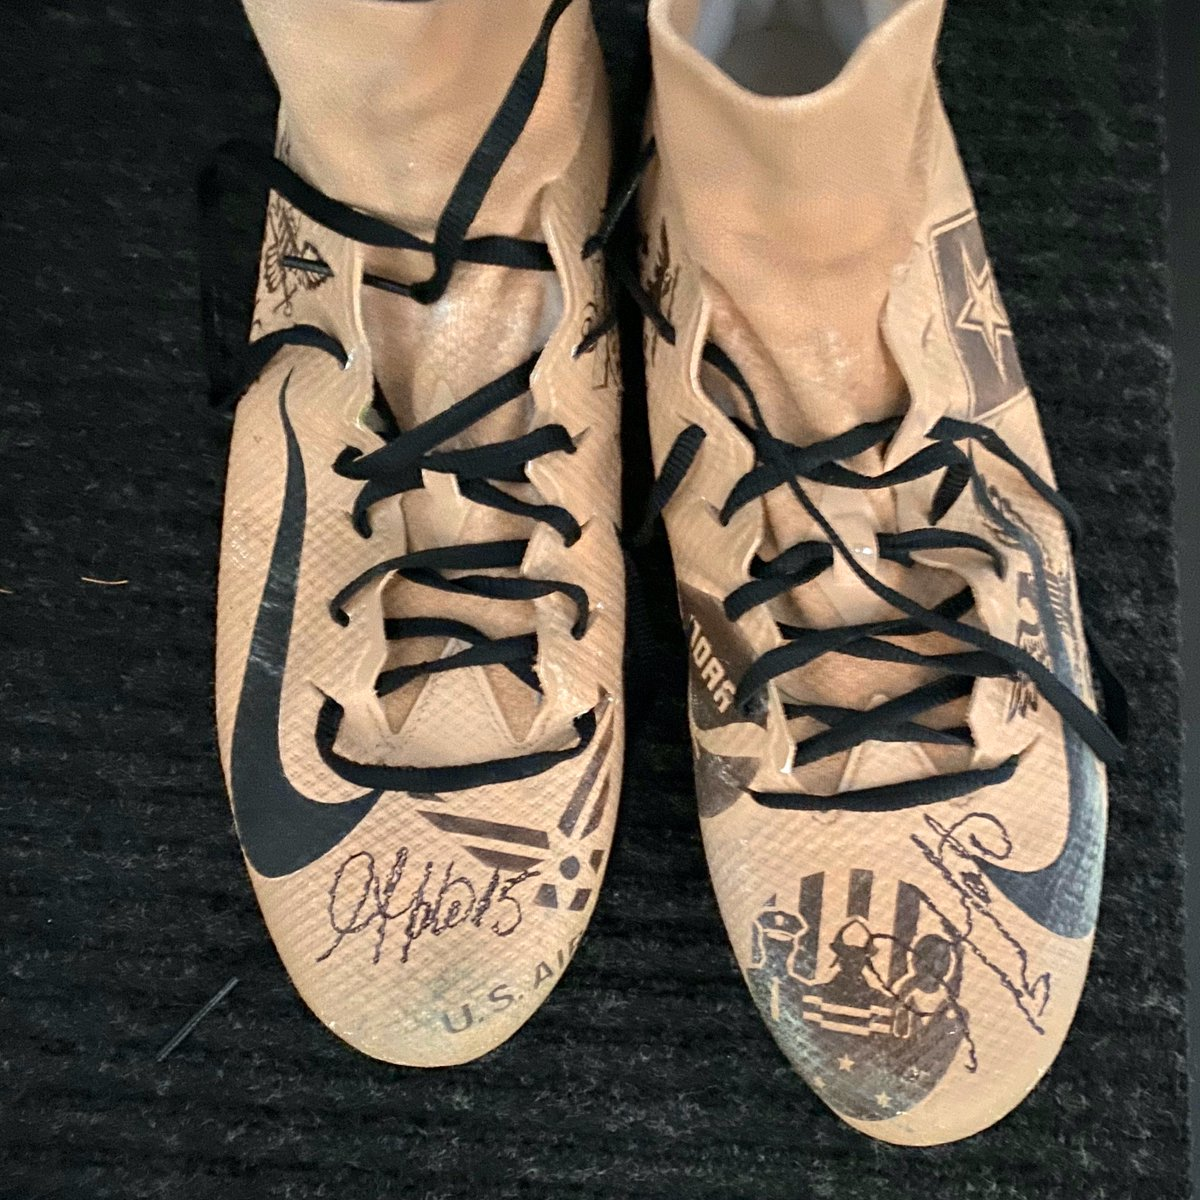 Remember, there's  more days to donate to @GoldenFutureFDN at the link below for a chance to win these cleats!  Reply with a screenshot of your donation and use #GivingTuesday to be entered! Any amount counts!!! It's for our troops!   https://www. goldentate.com/foundation/mak e-a-donation/  … <br>http://pic.twitter.com/2TyKP7Wd49